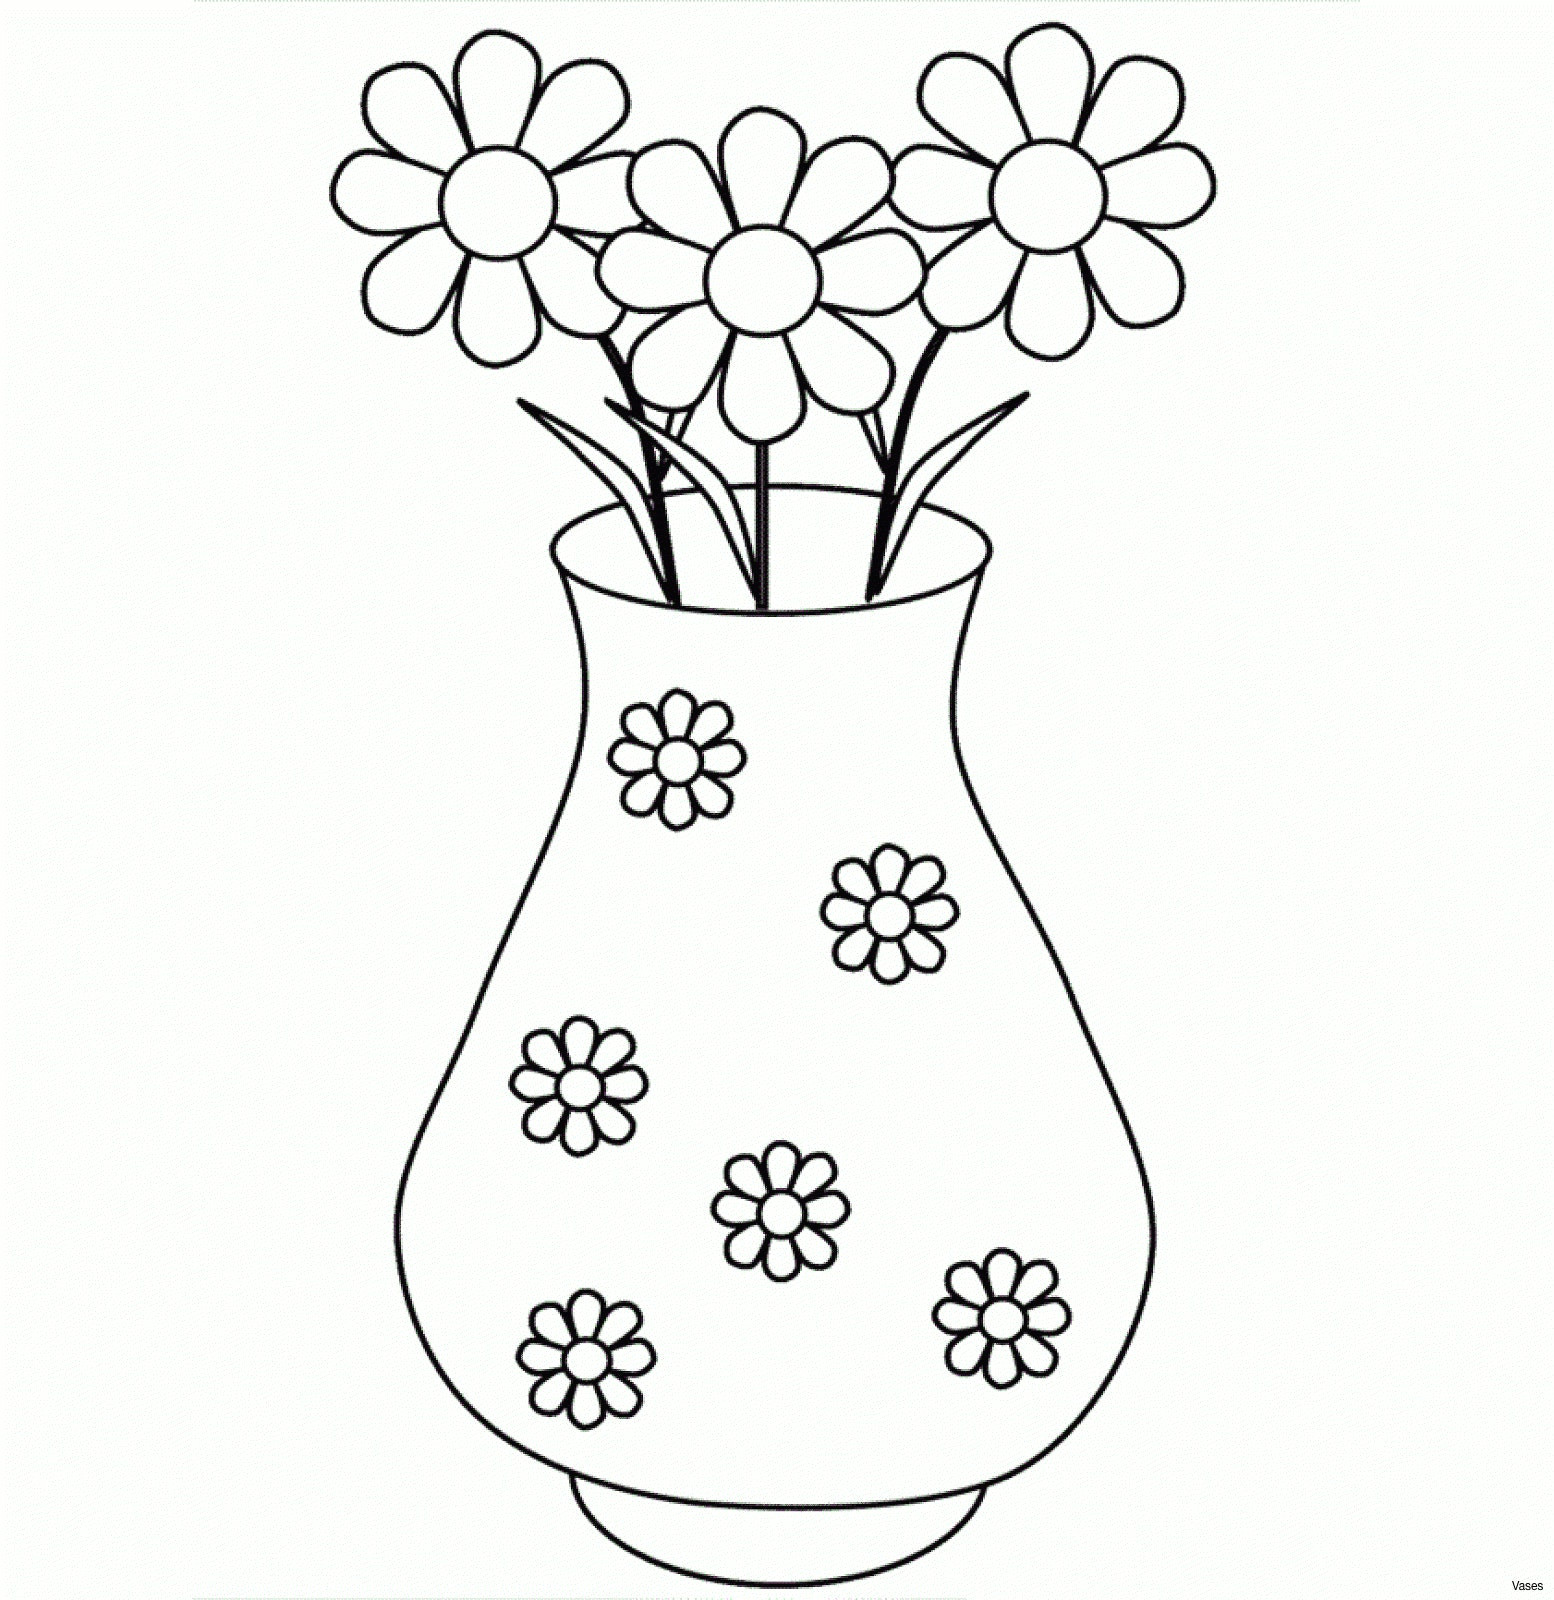 images of easy drawings 50 awesome collection sketch for kids of images of easy drawings vase